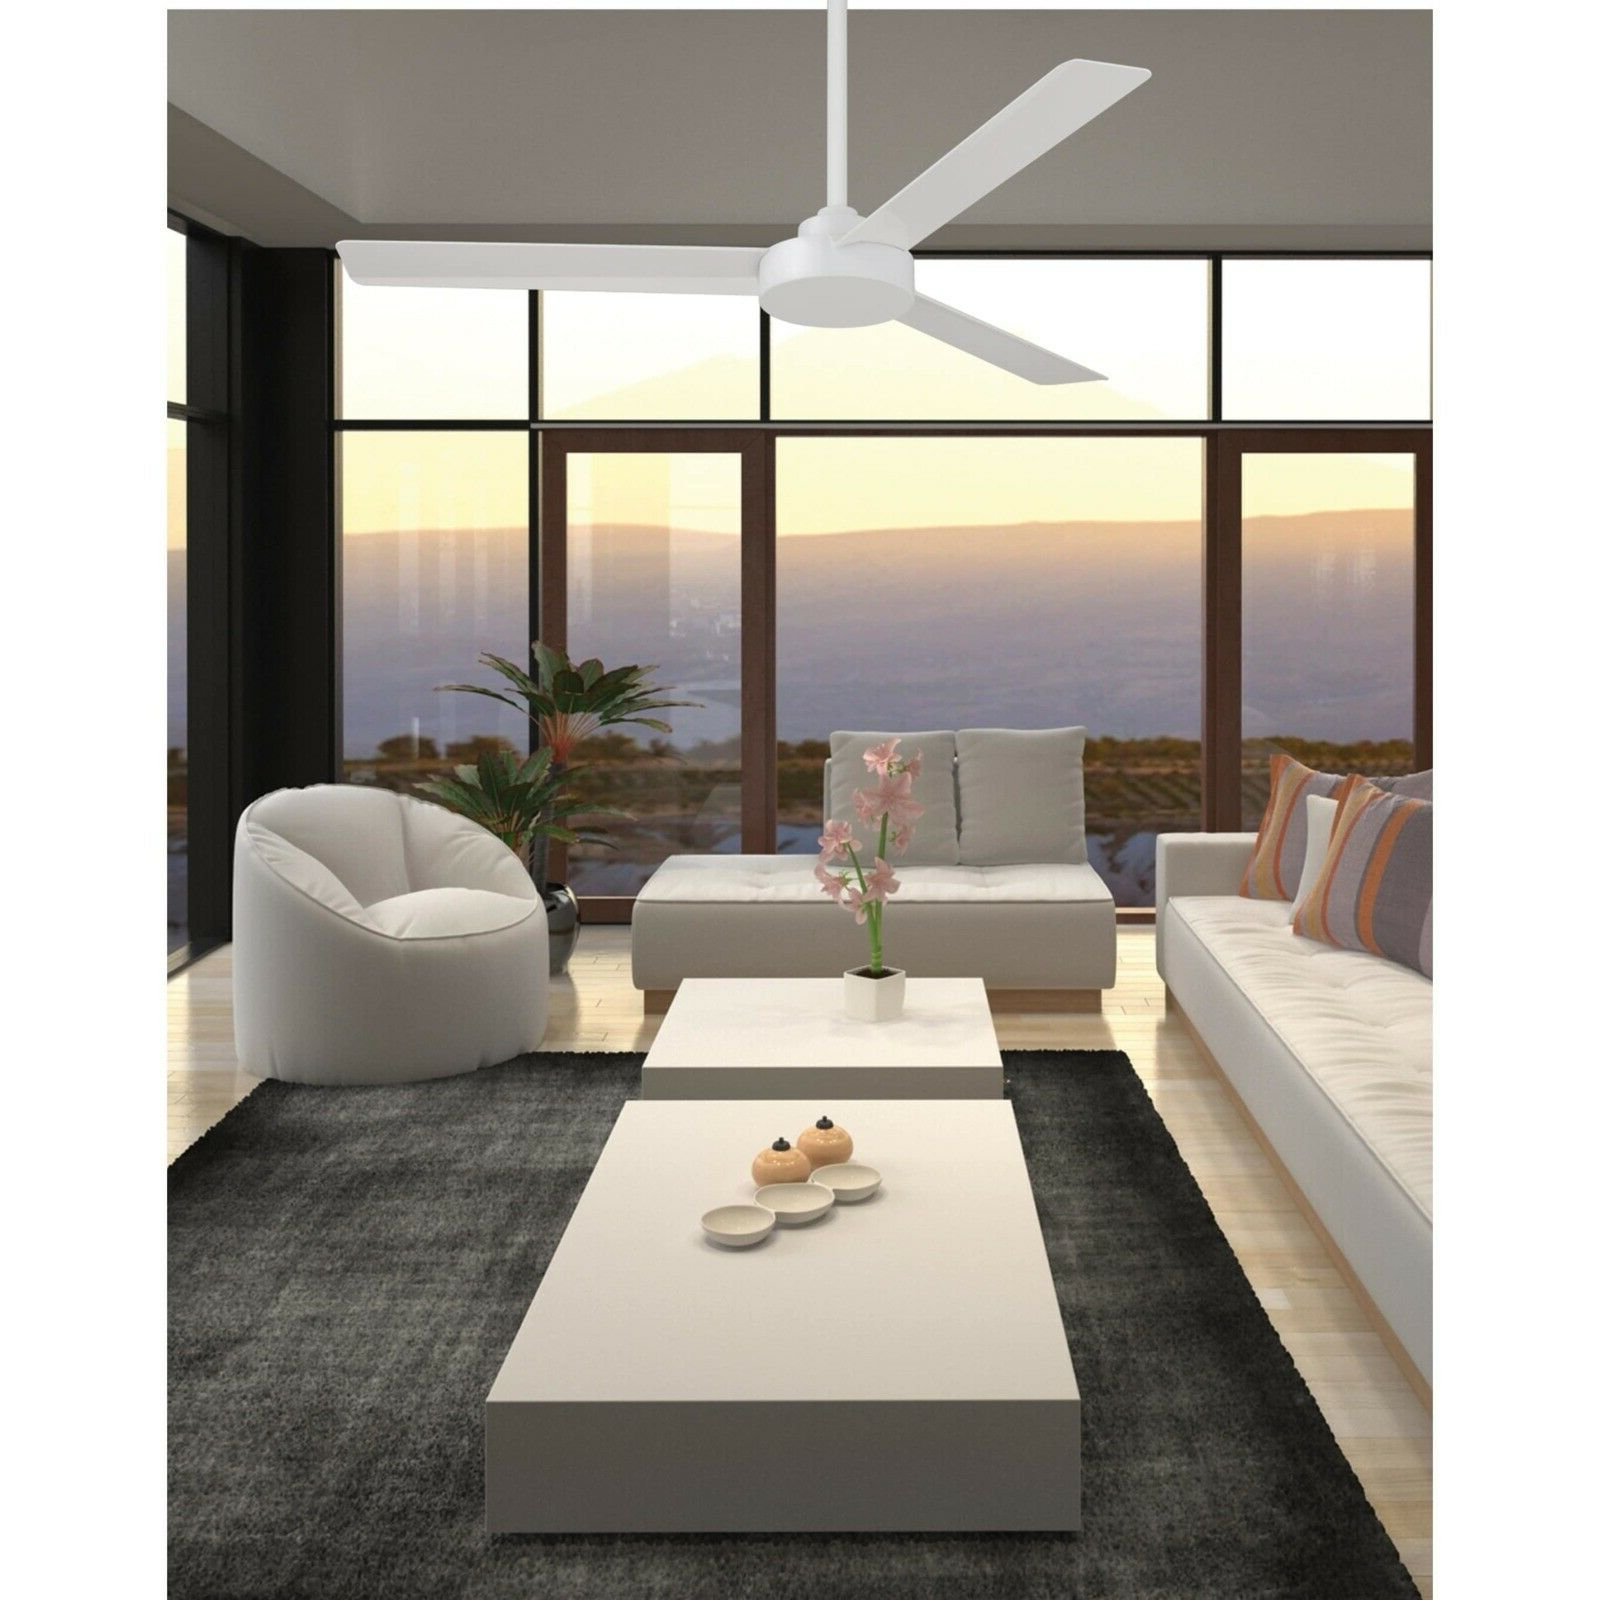 """Roto 3 Blade Ceiling Fans With Fashionable Details About Ceiling Fan 52'' With 3 Blade 6"""" Downrod Flat Aluminum  Construction White Finish (View 13 of 20)"""